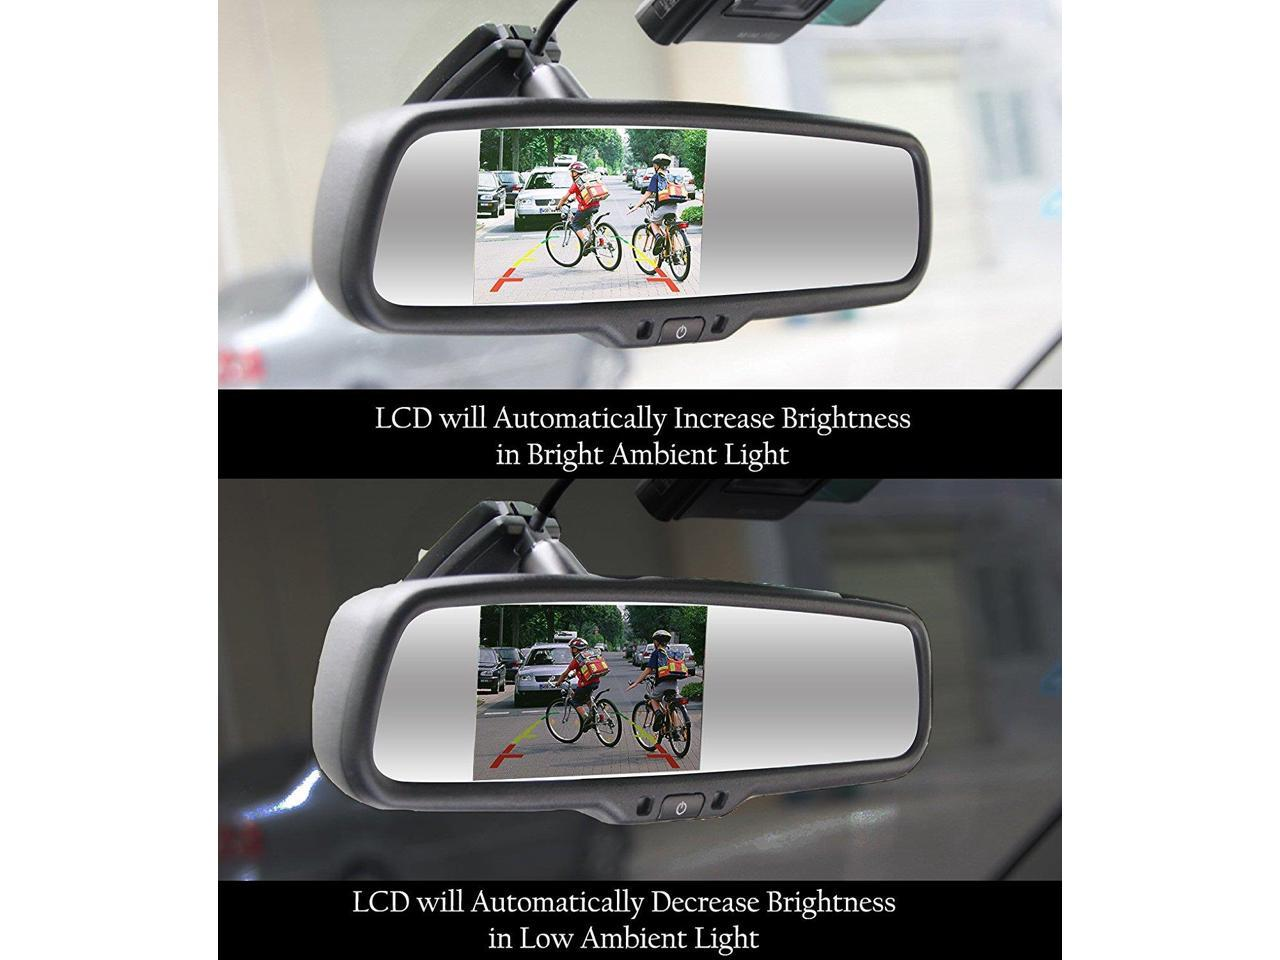 """Master Tailgaters OEM Rear View Mirror with 4.3/"""" Auto Adjusting Brightness LCD"""